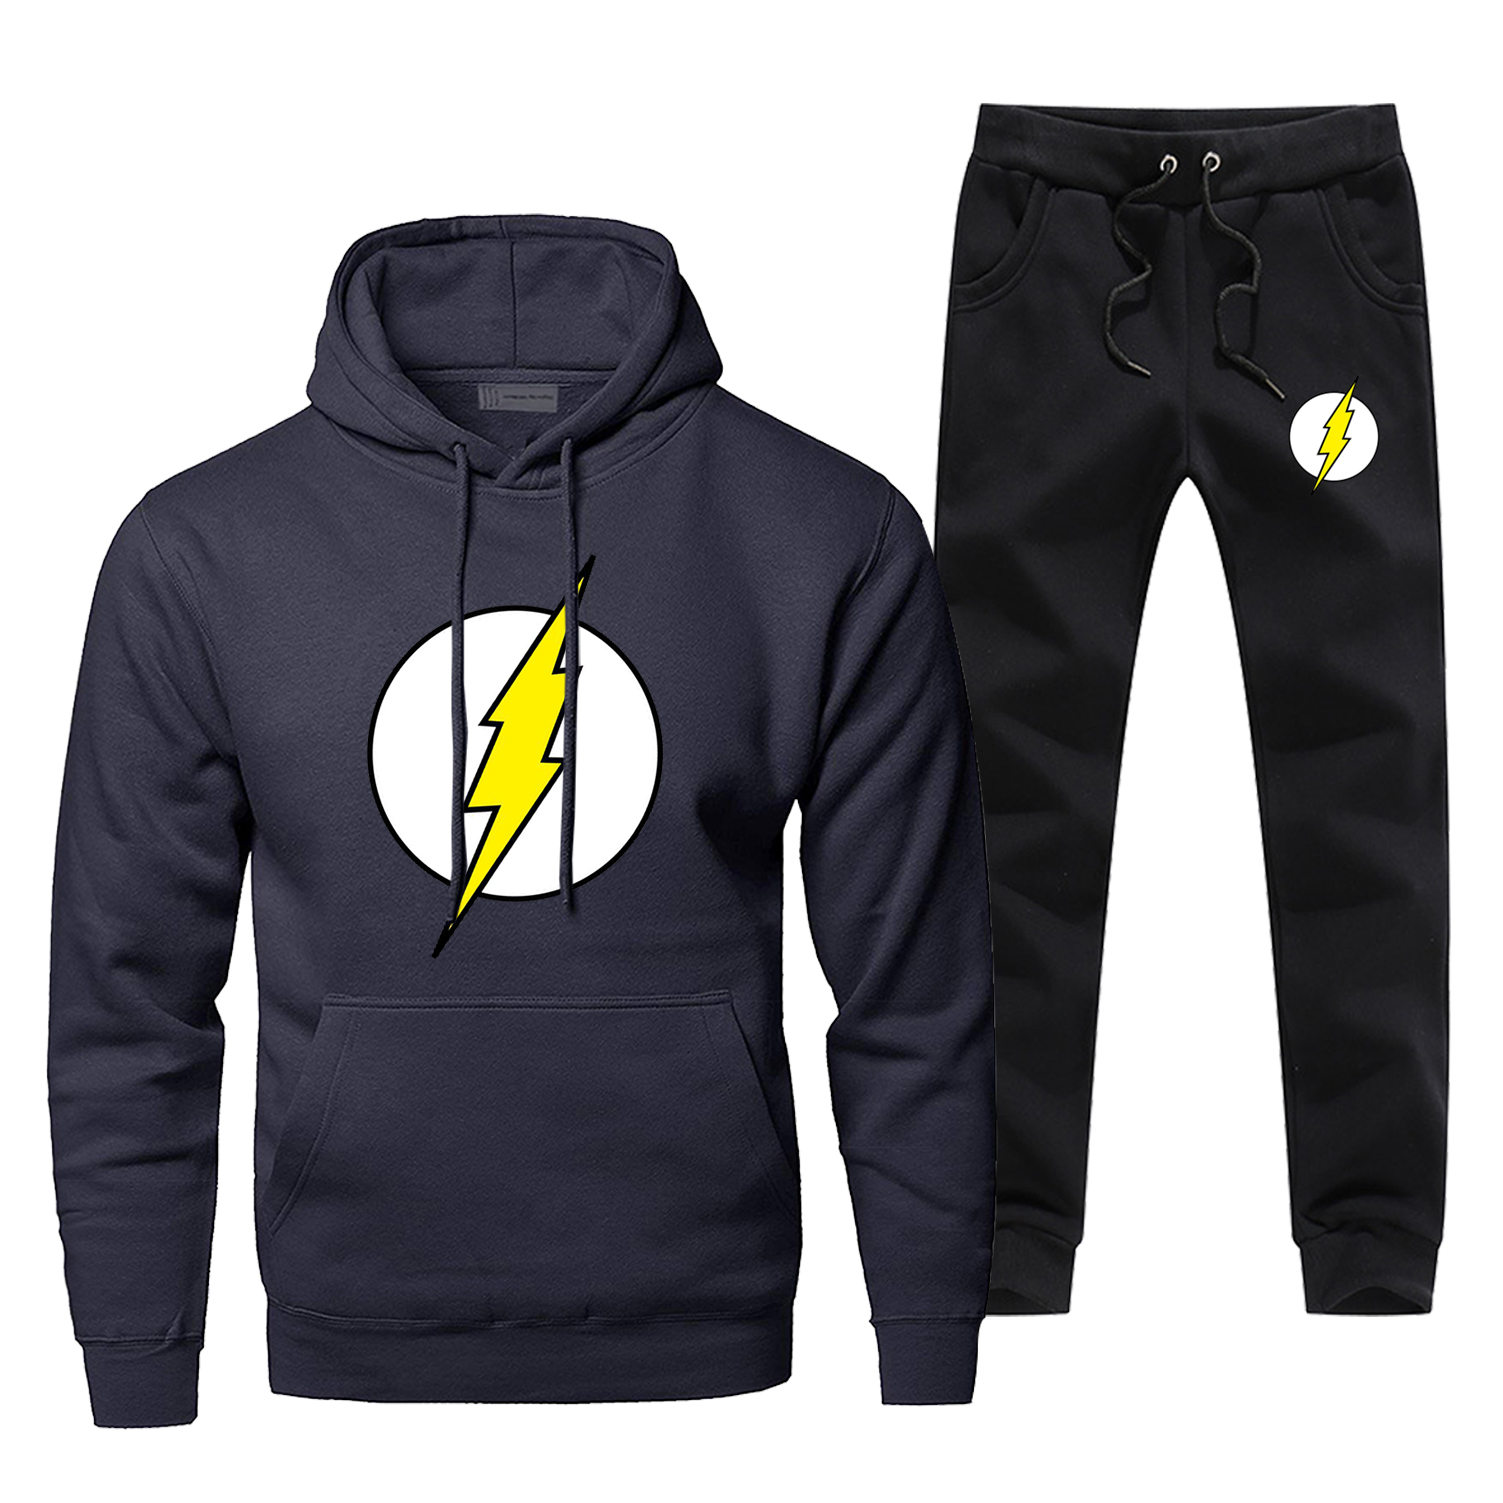 The Big Bang Sheldon Lee Cooper Men's Full Suit Tracksuit The Flash Cosplay Fashion Hoodies Winter Warm Complete Man Tracksuit